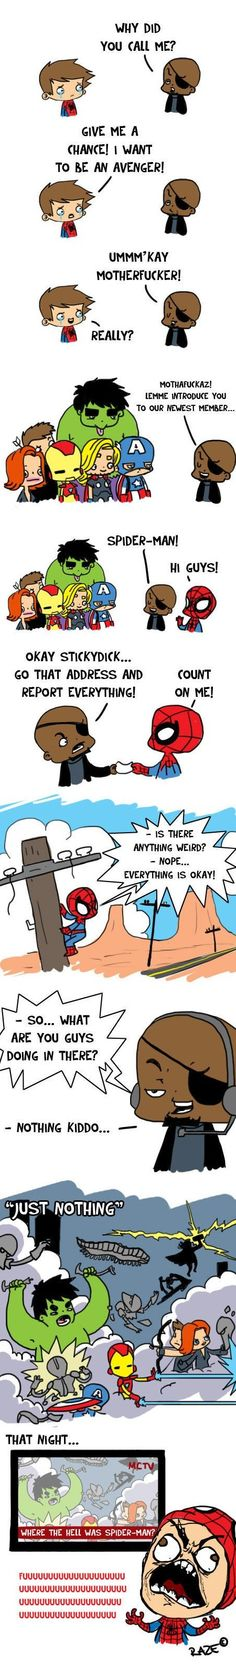 Funny - Avengers and Spiderman - www.funny-pictures-blog.com